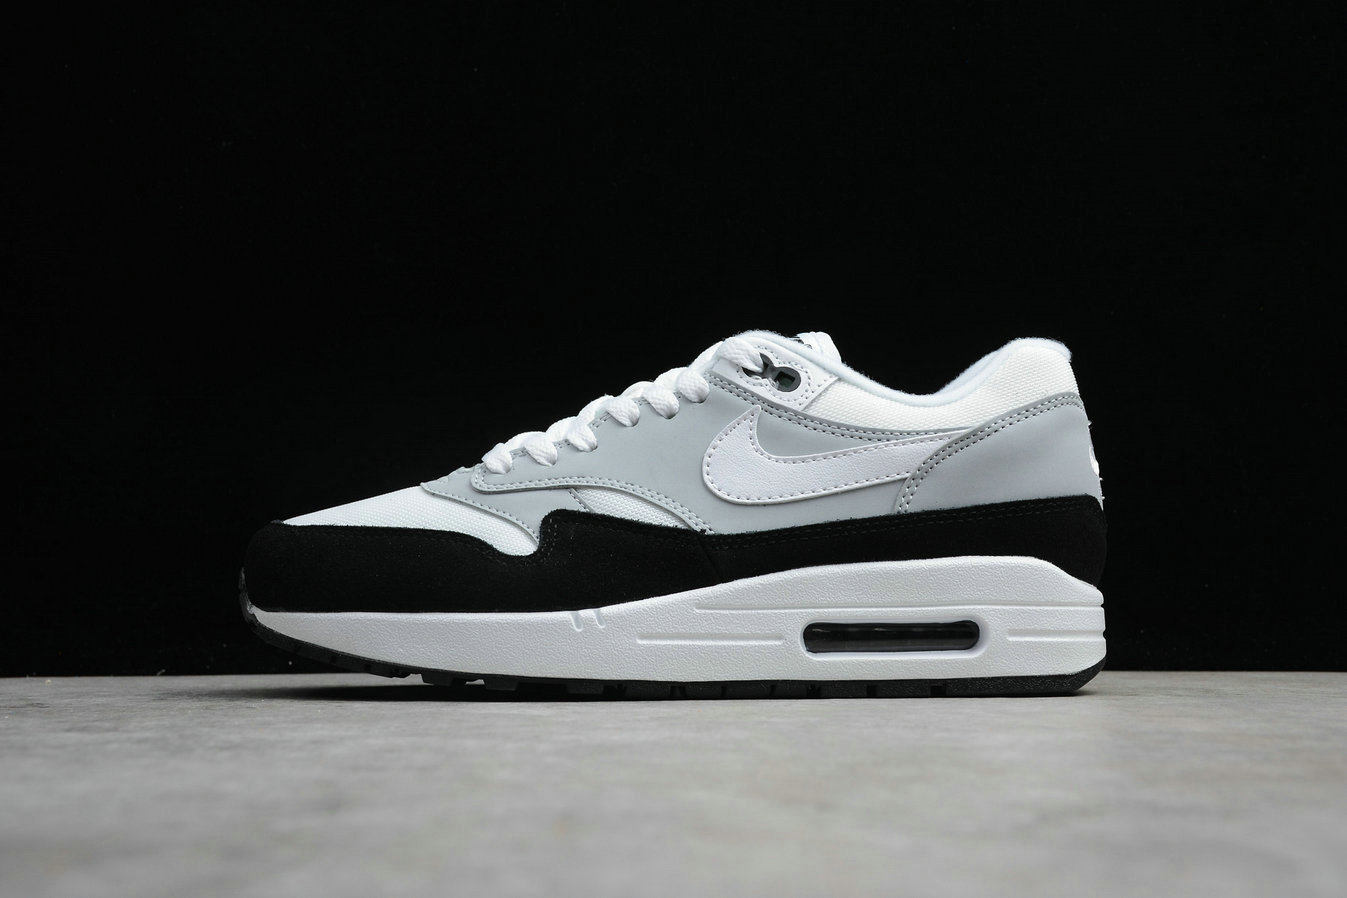 Cheap Wholesale Nike Air Max 1 AH8145-003 Wolf Grey White Black Gris Loup Noir Blanc- www.wholesaleflyknit.com